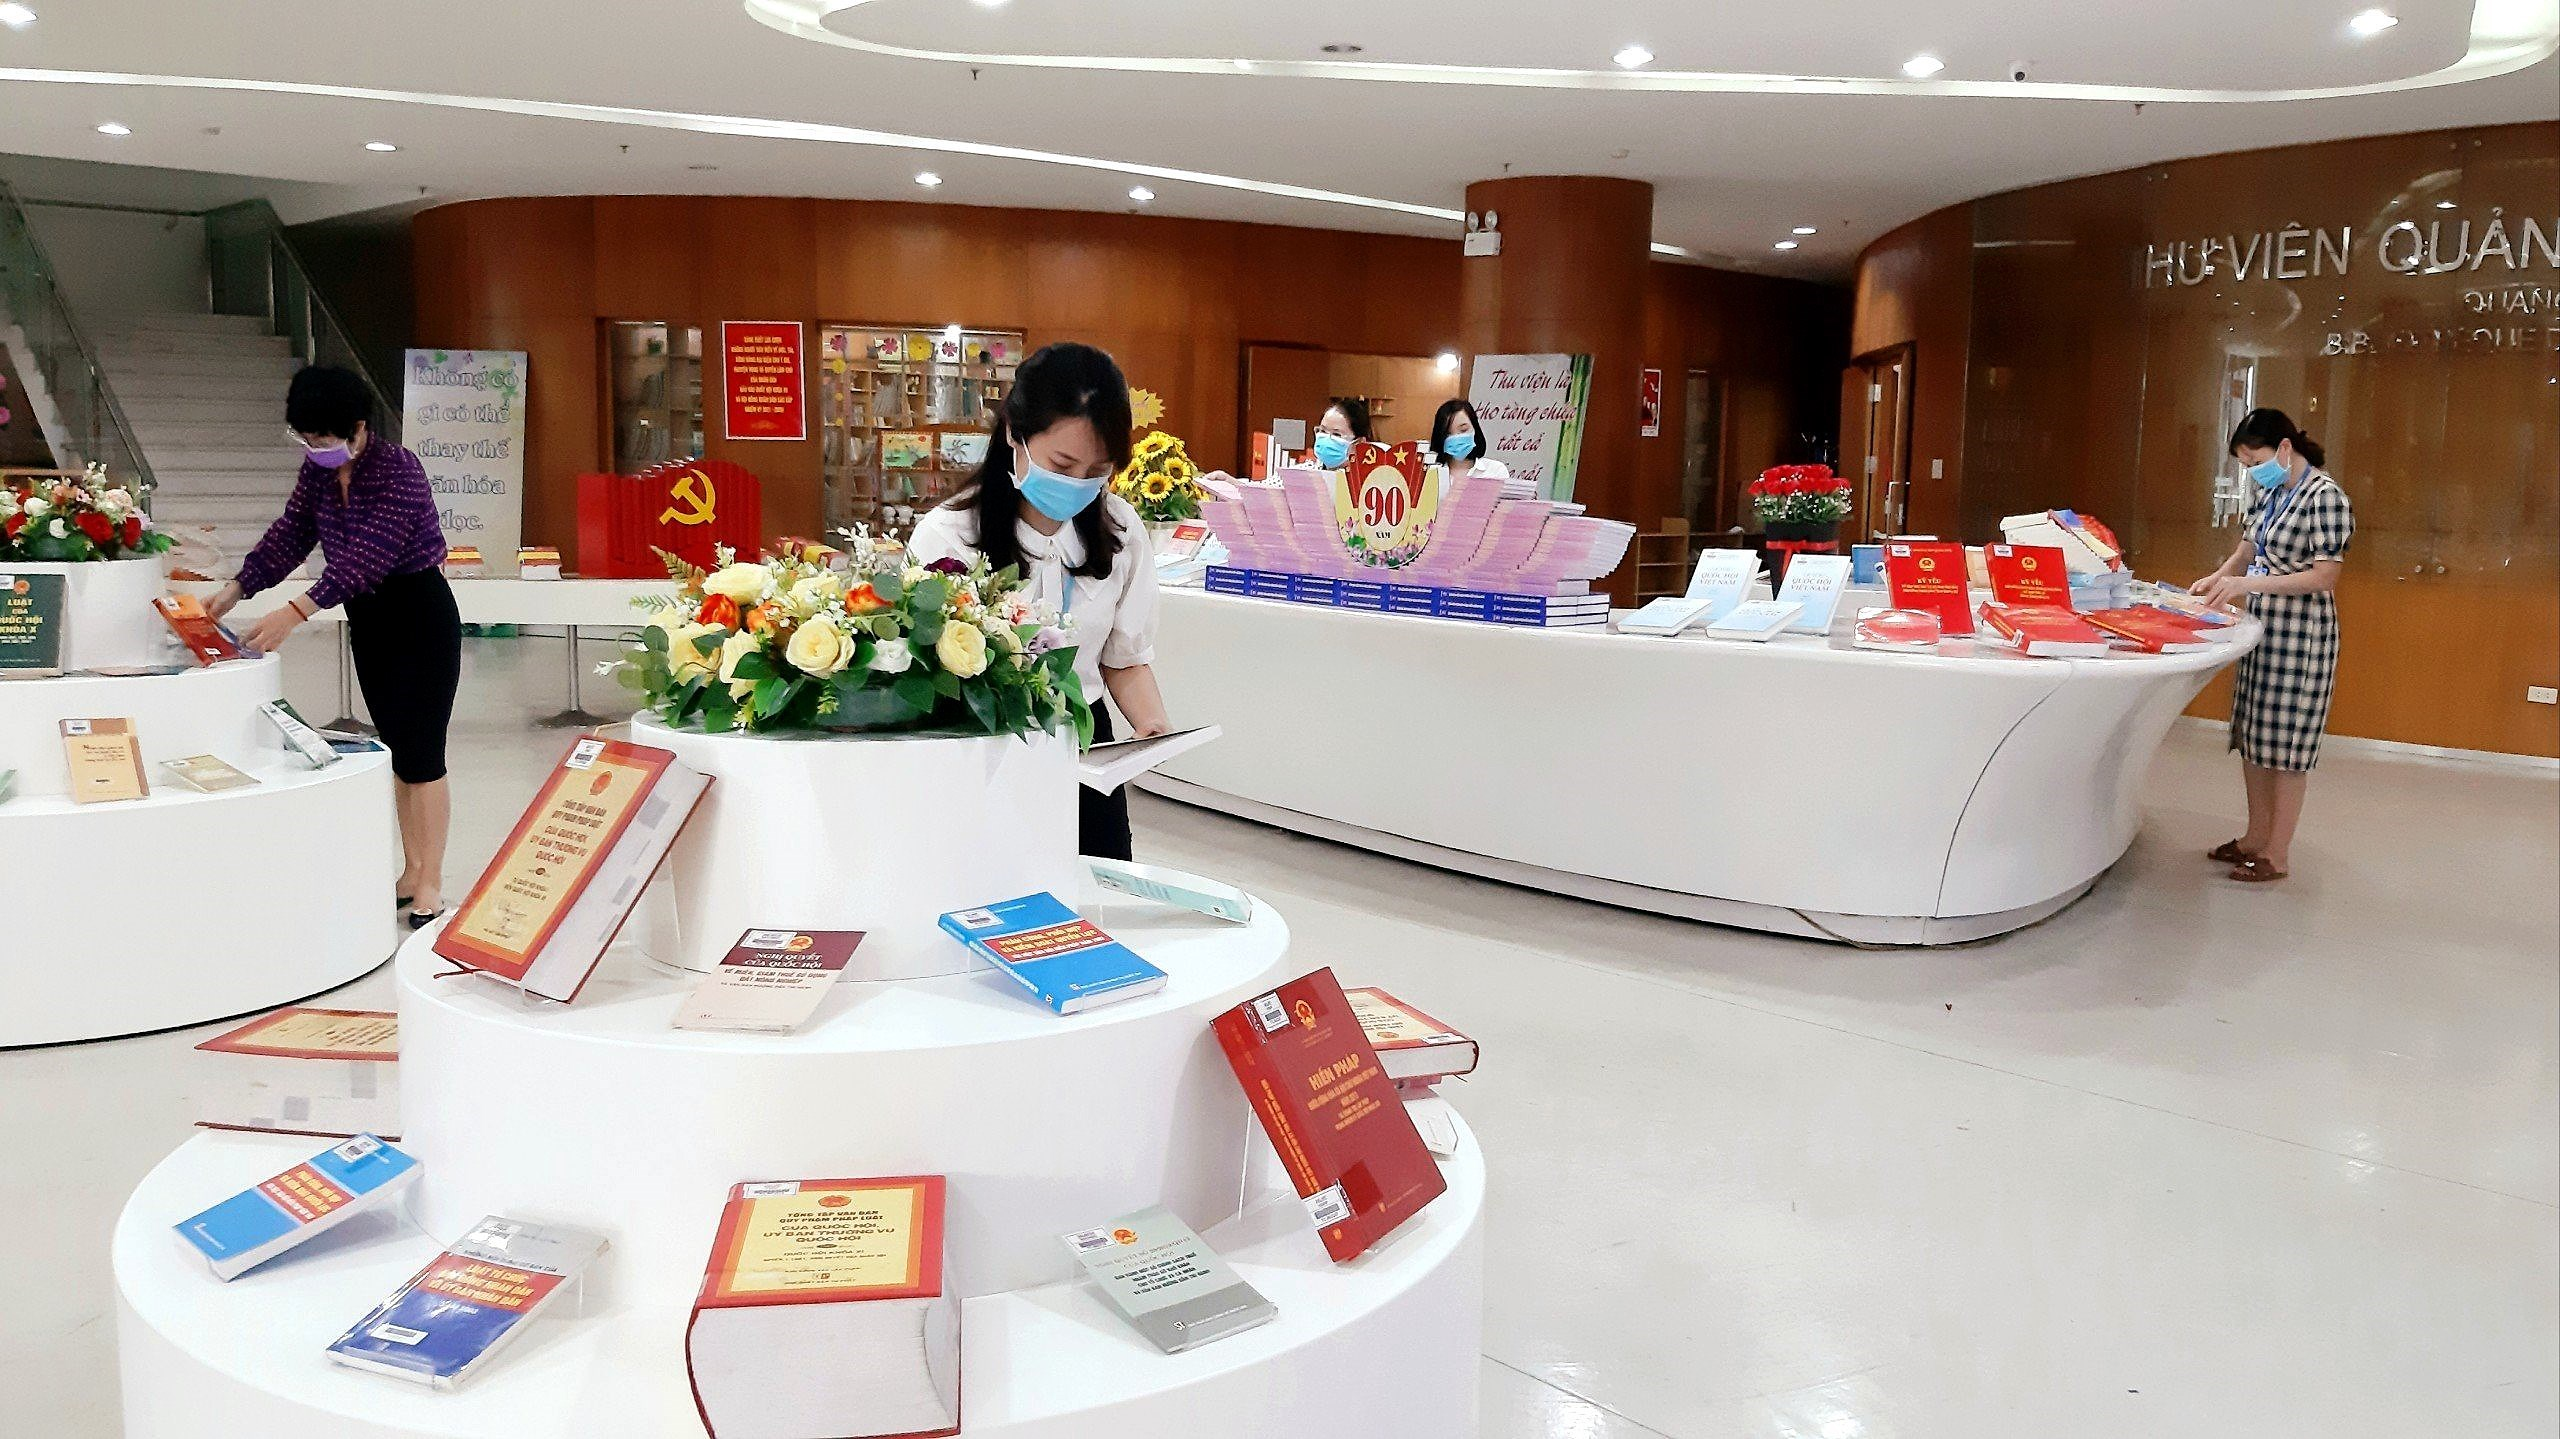 Books on election on display in Quang Ninh province hinh anh 3